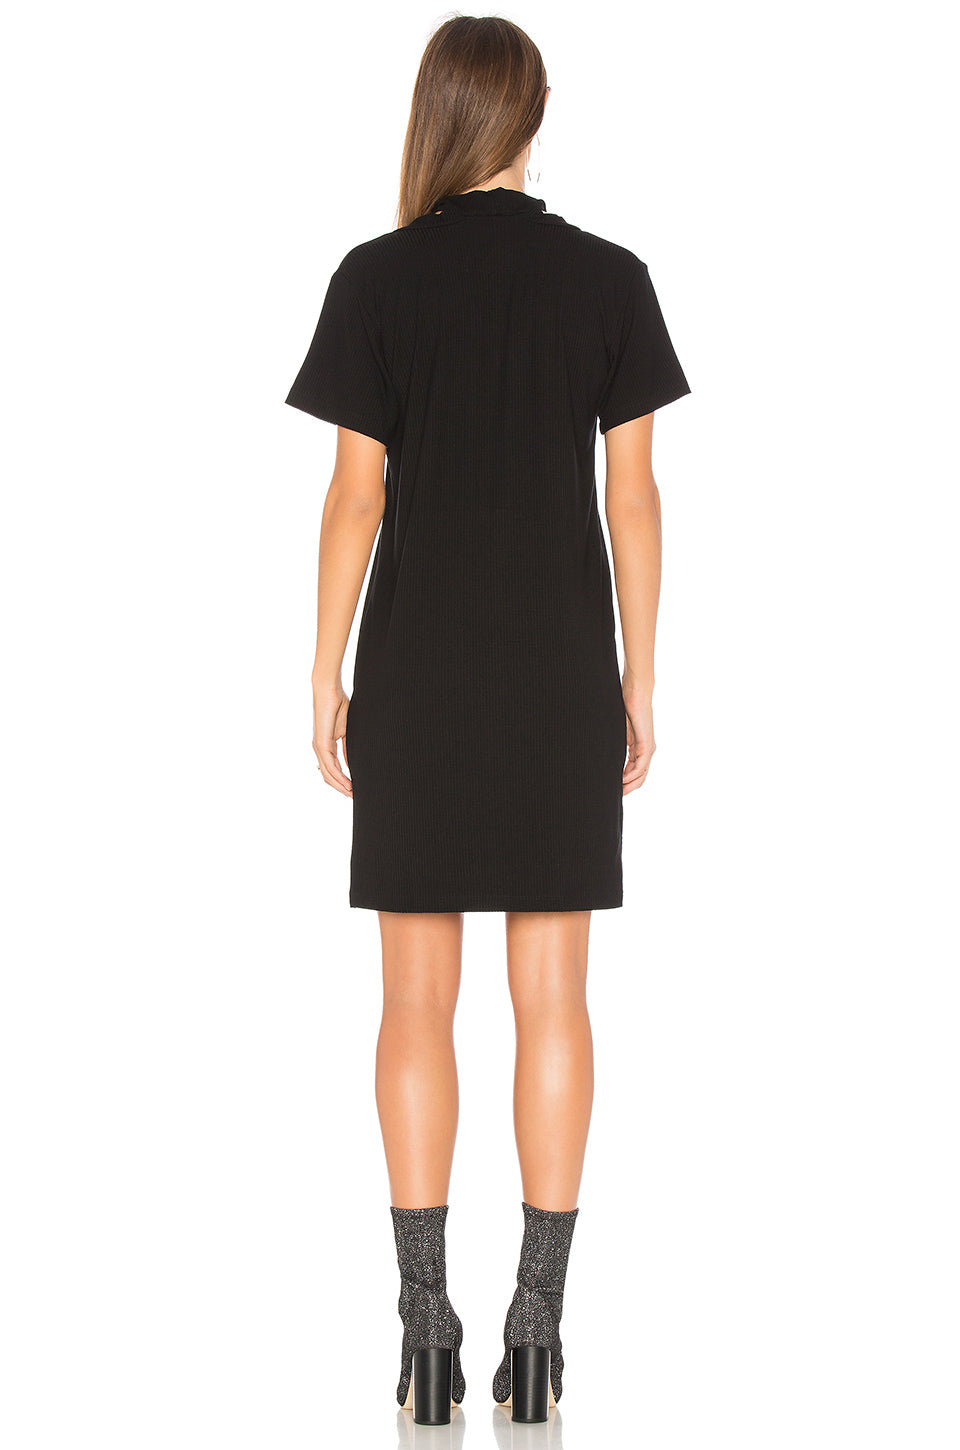 LNA Klassen Choker Dress Black